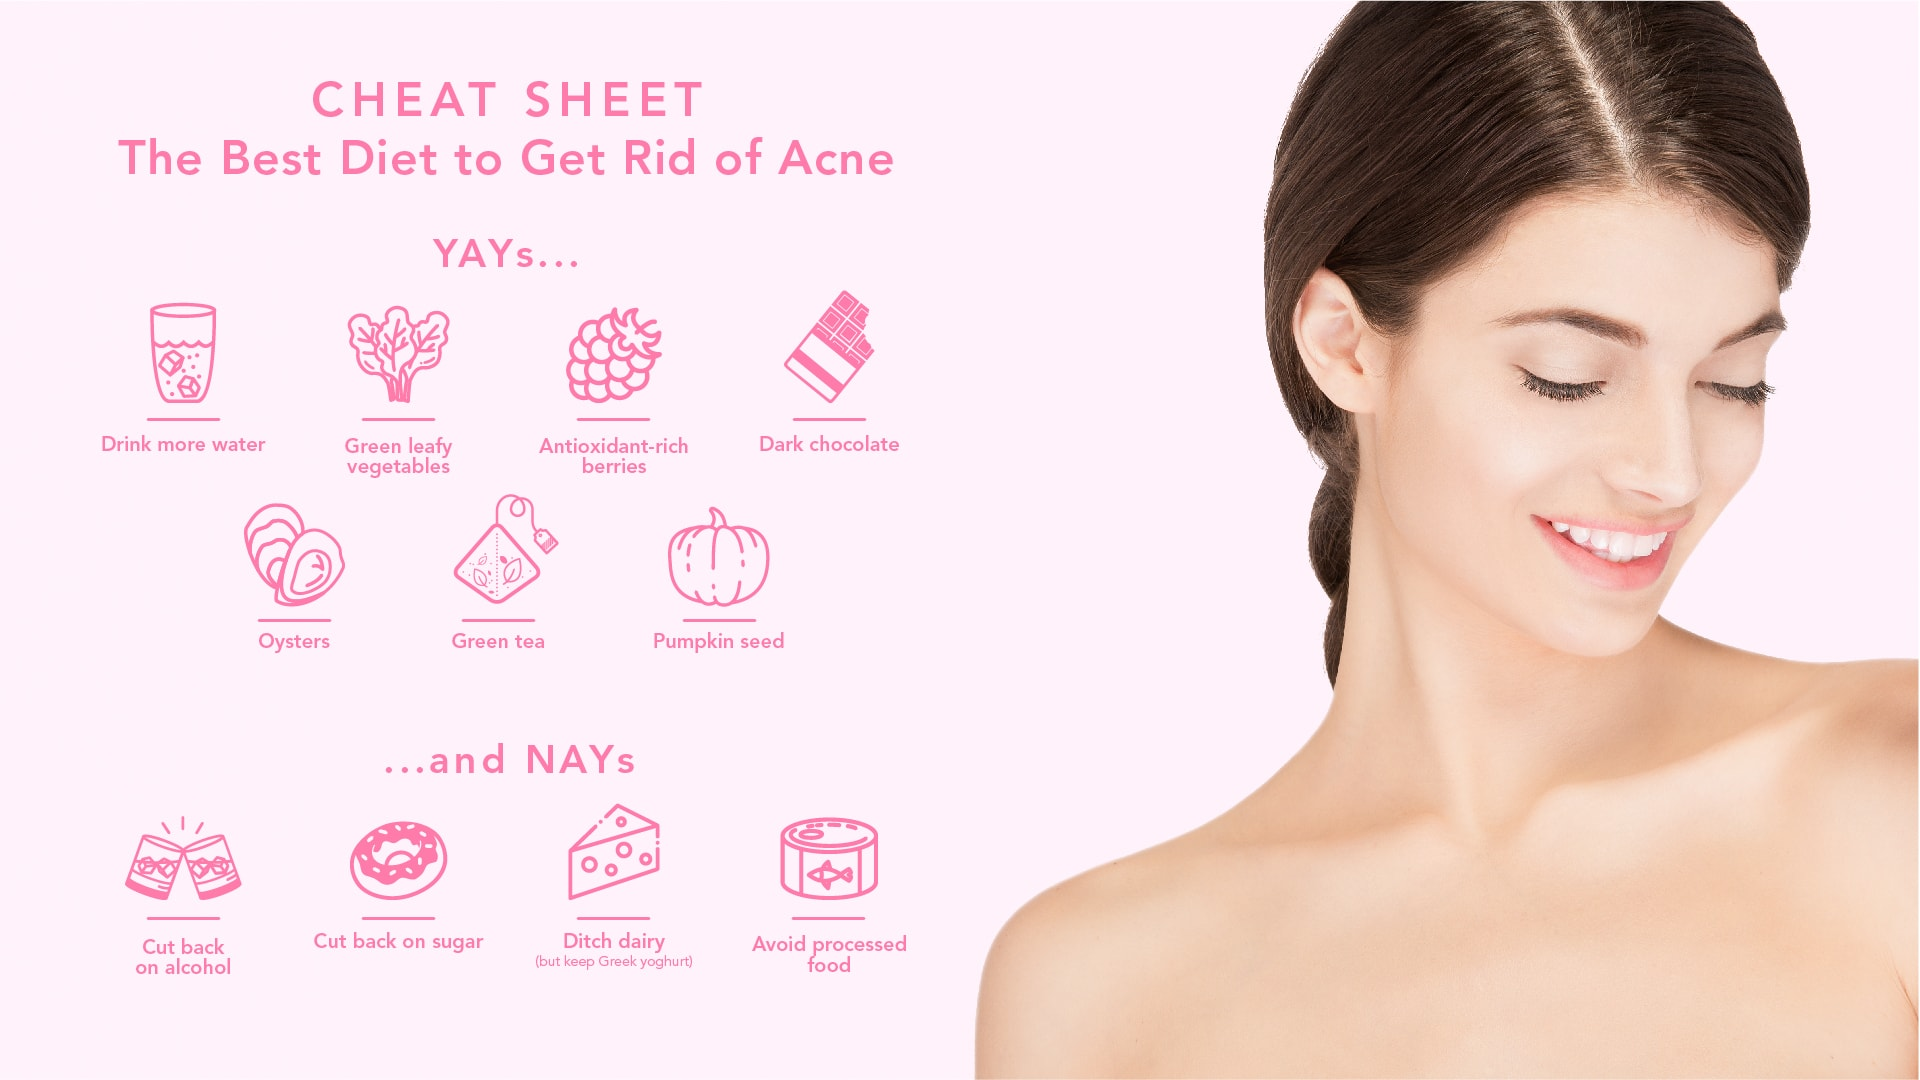 the acne diet: beginner's guide to clear skin eating